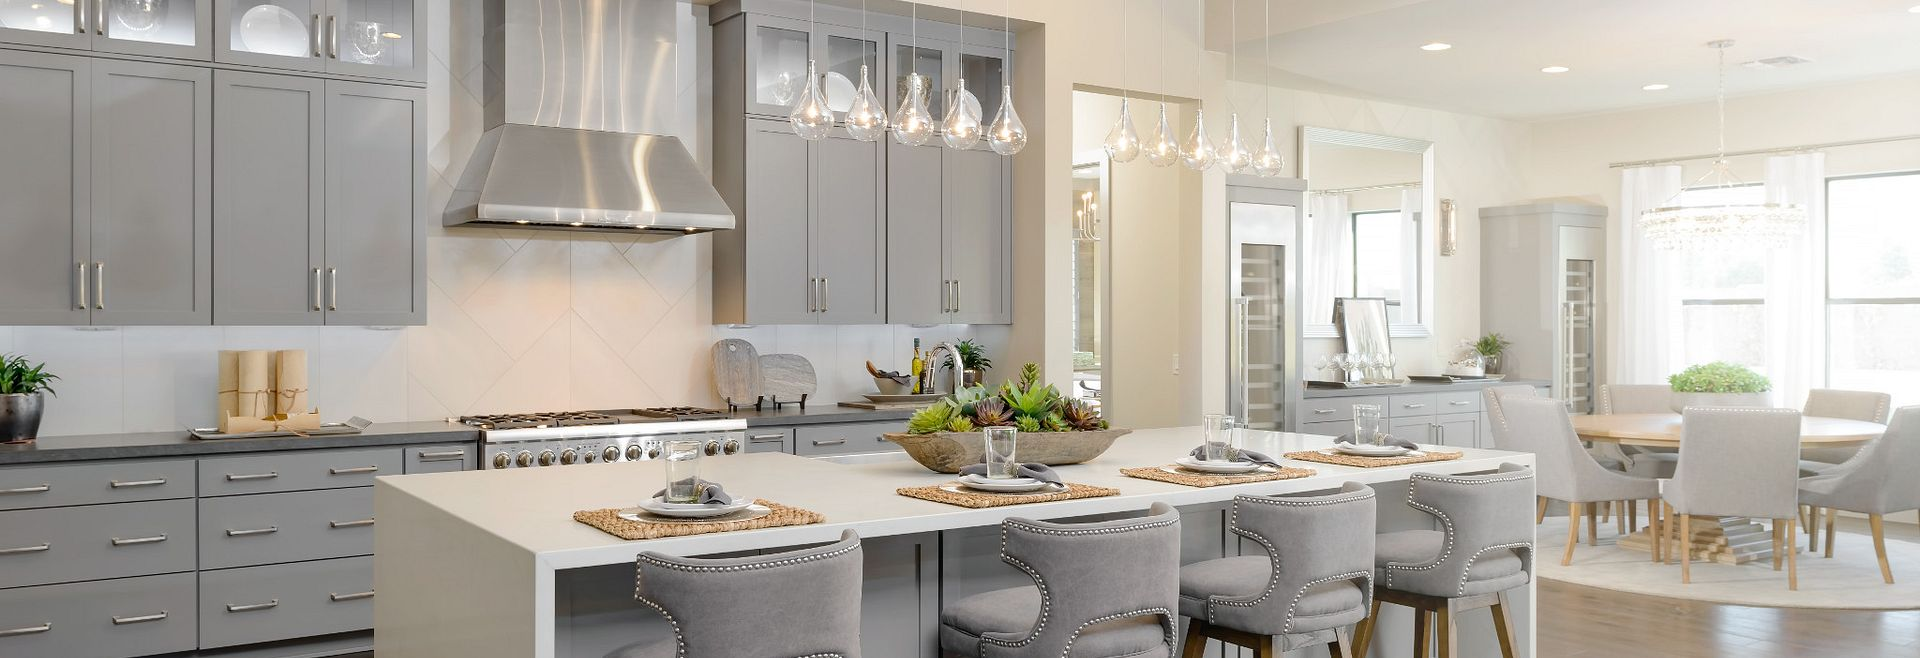 The Reserves Residence 4 Kitchen with grey cabinets, island seating, and eat-in area